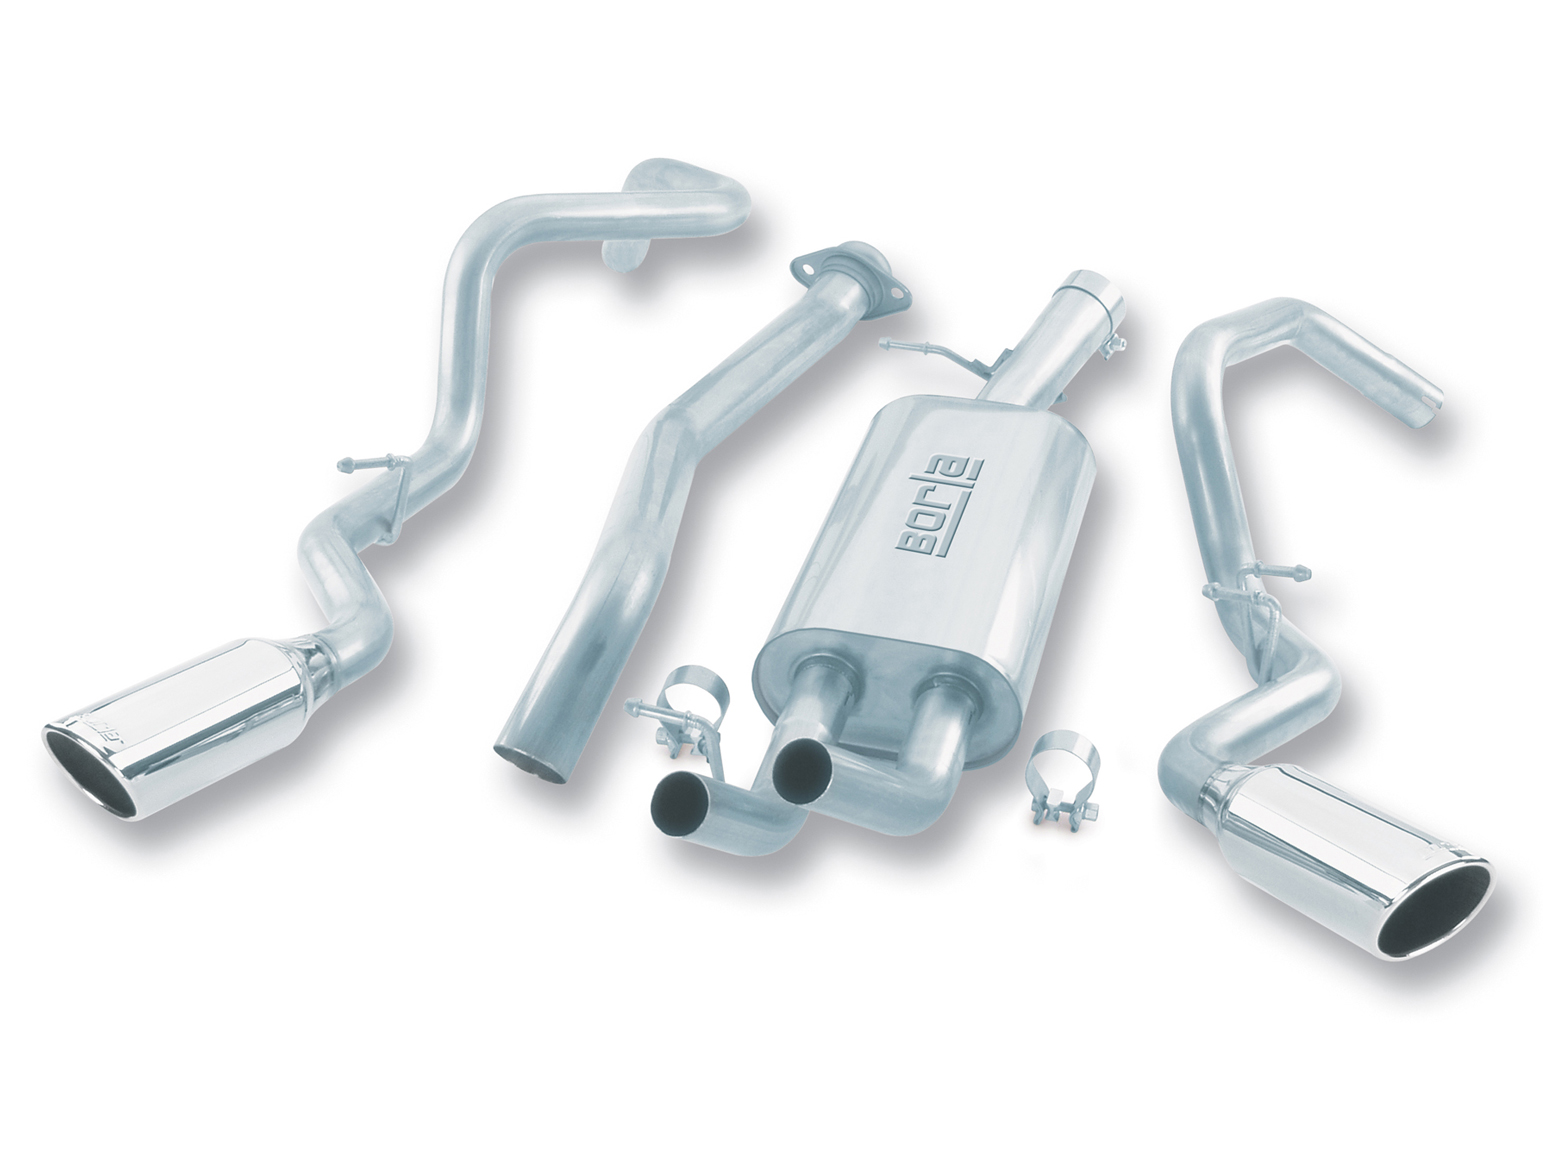 "Chevrolet Silverado 1500 1999-2007 Borla 3"", 2.25"" Cat-Back Exhaust System - Single Round Rolled Angle-Cut  Long X Single Round Rolled Angle-Cut Intercooled"" Dia"